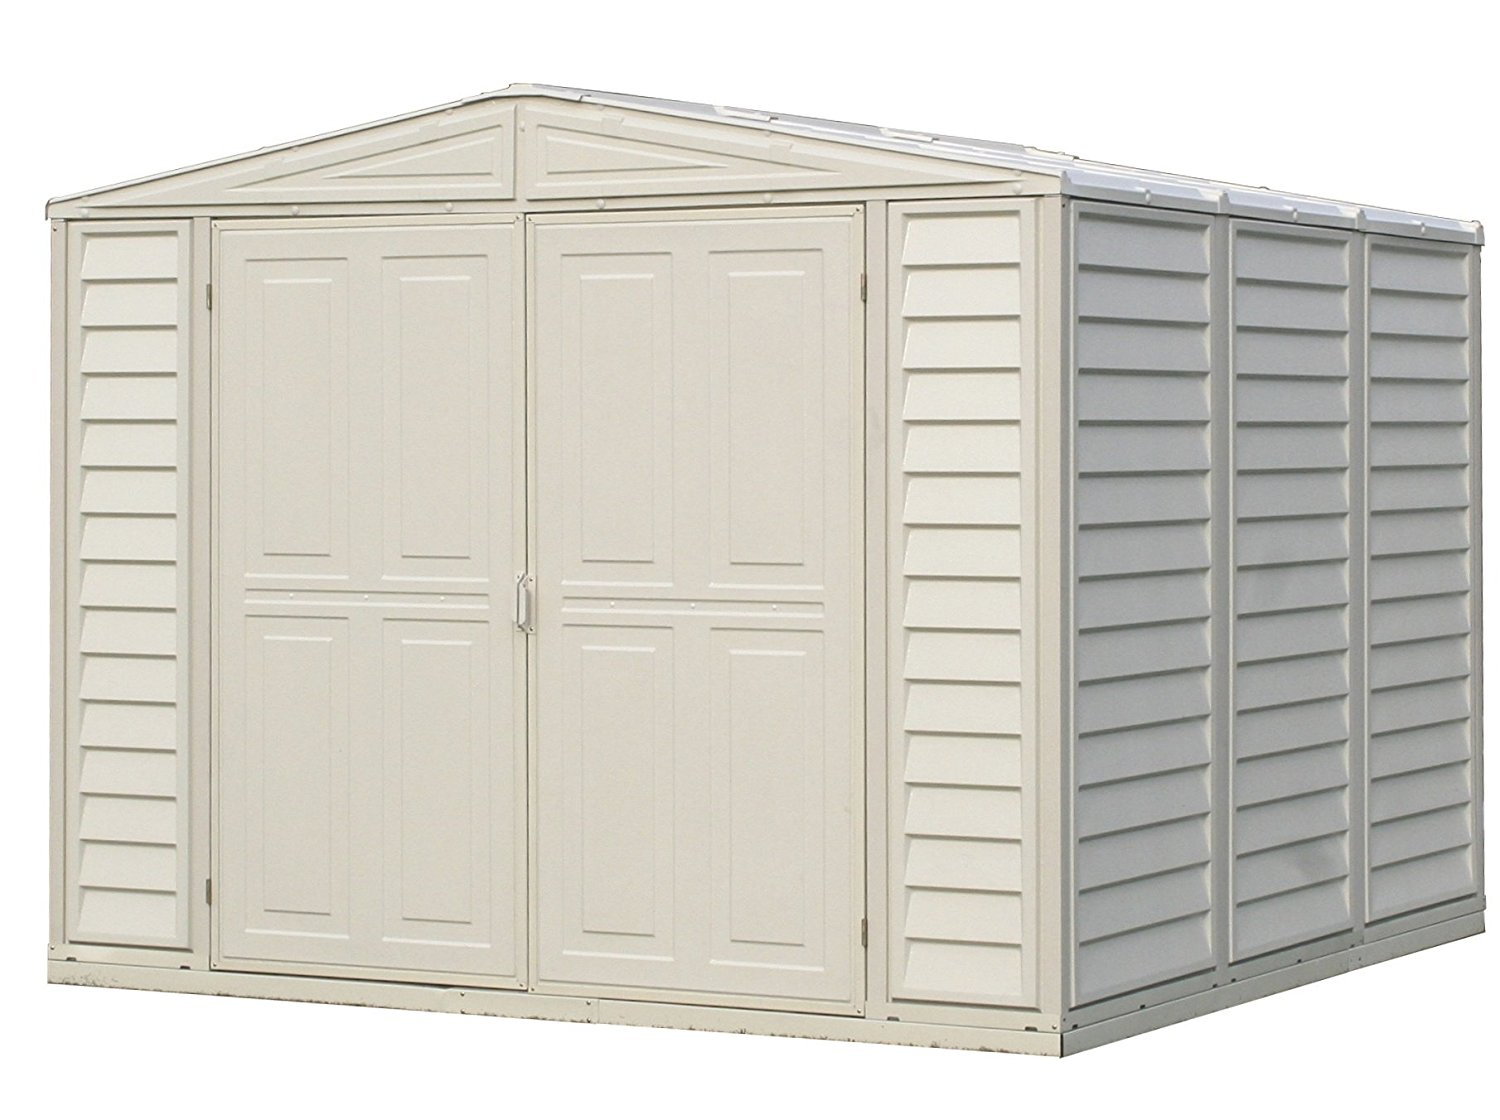 Duramax DuraMate Shed with Foundation